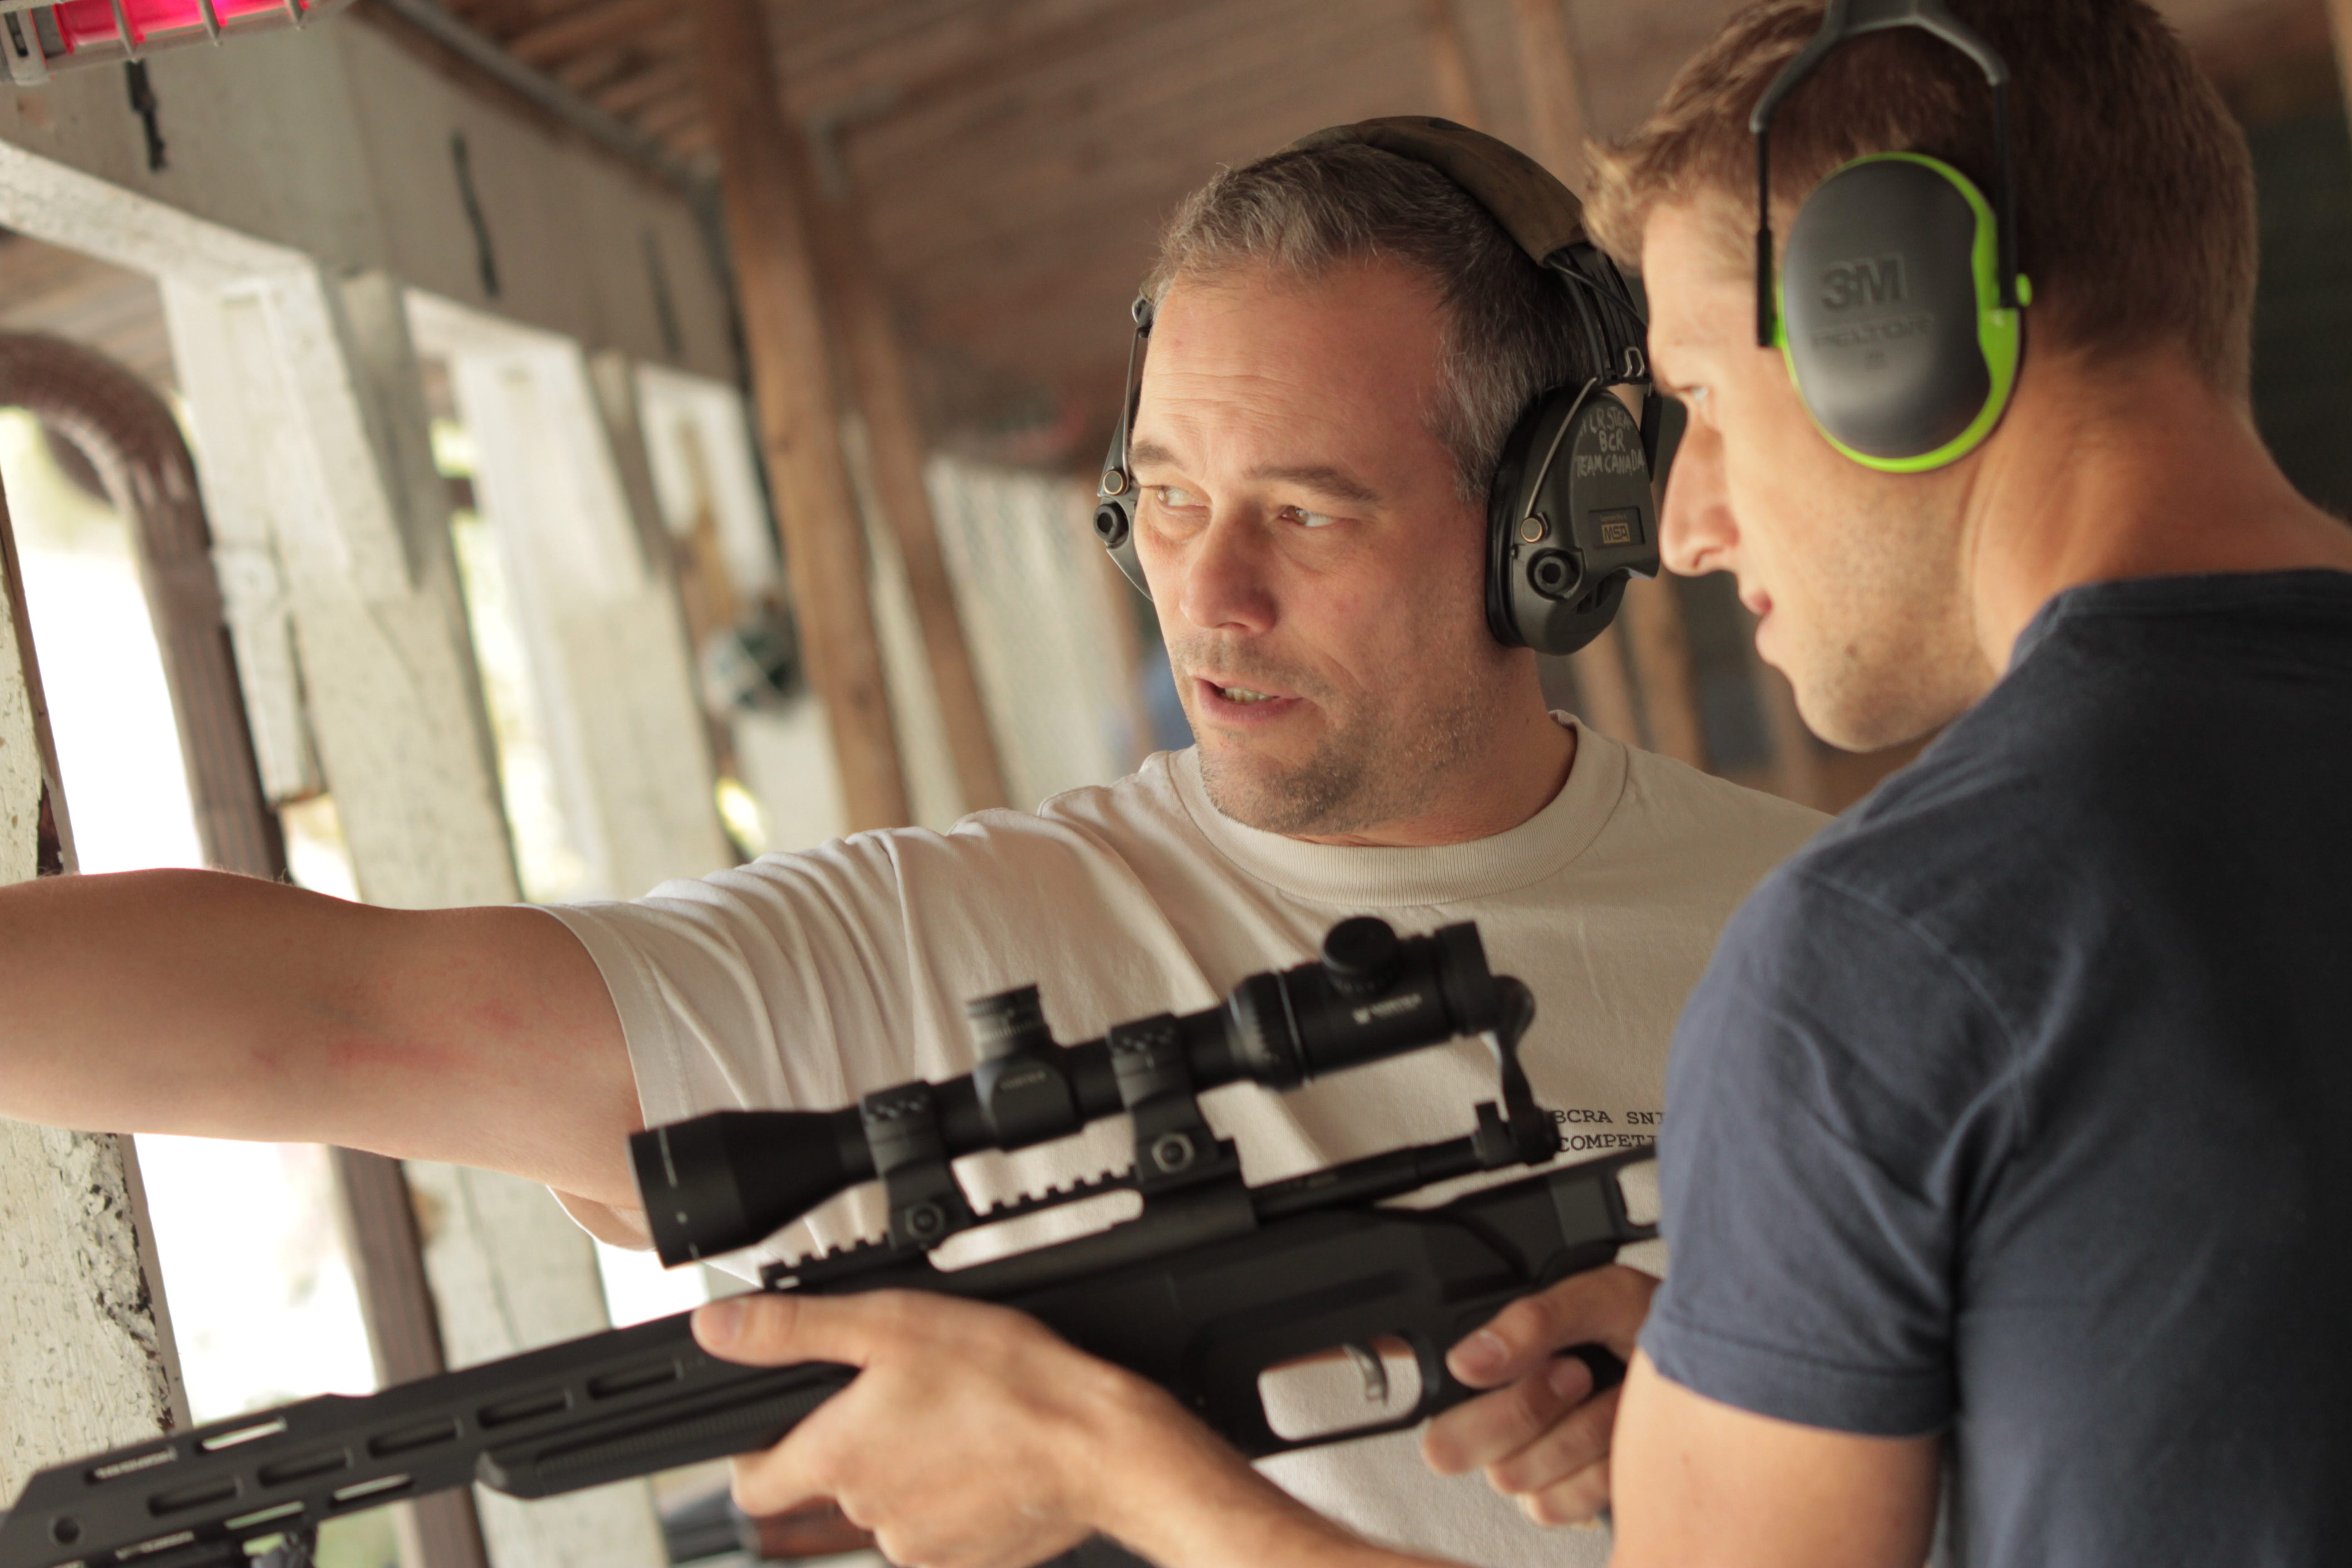 THE FOUR (ACTUALLY FIVE) QUESTIONS EVERY LONG RANGE RIFLE INSTRUCTOR GETS ASKED EVENTUALLY